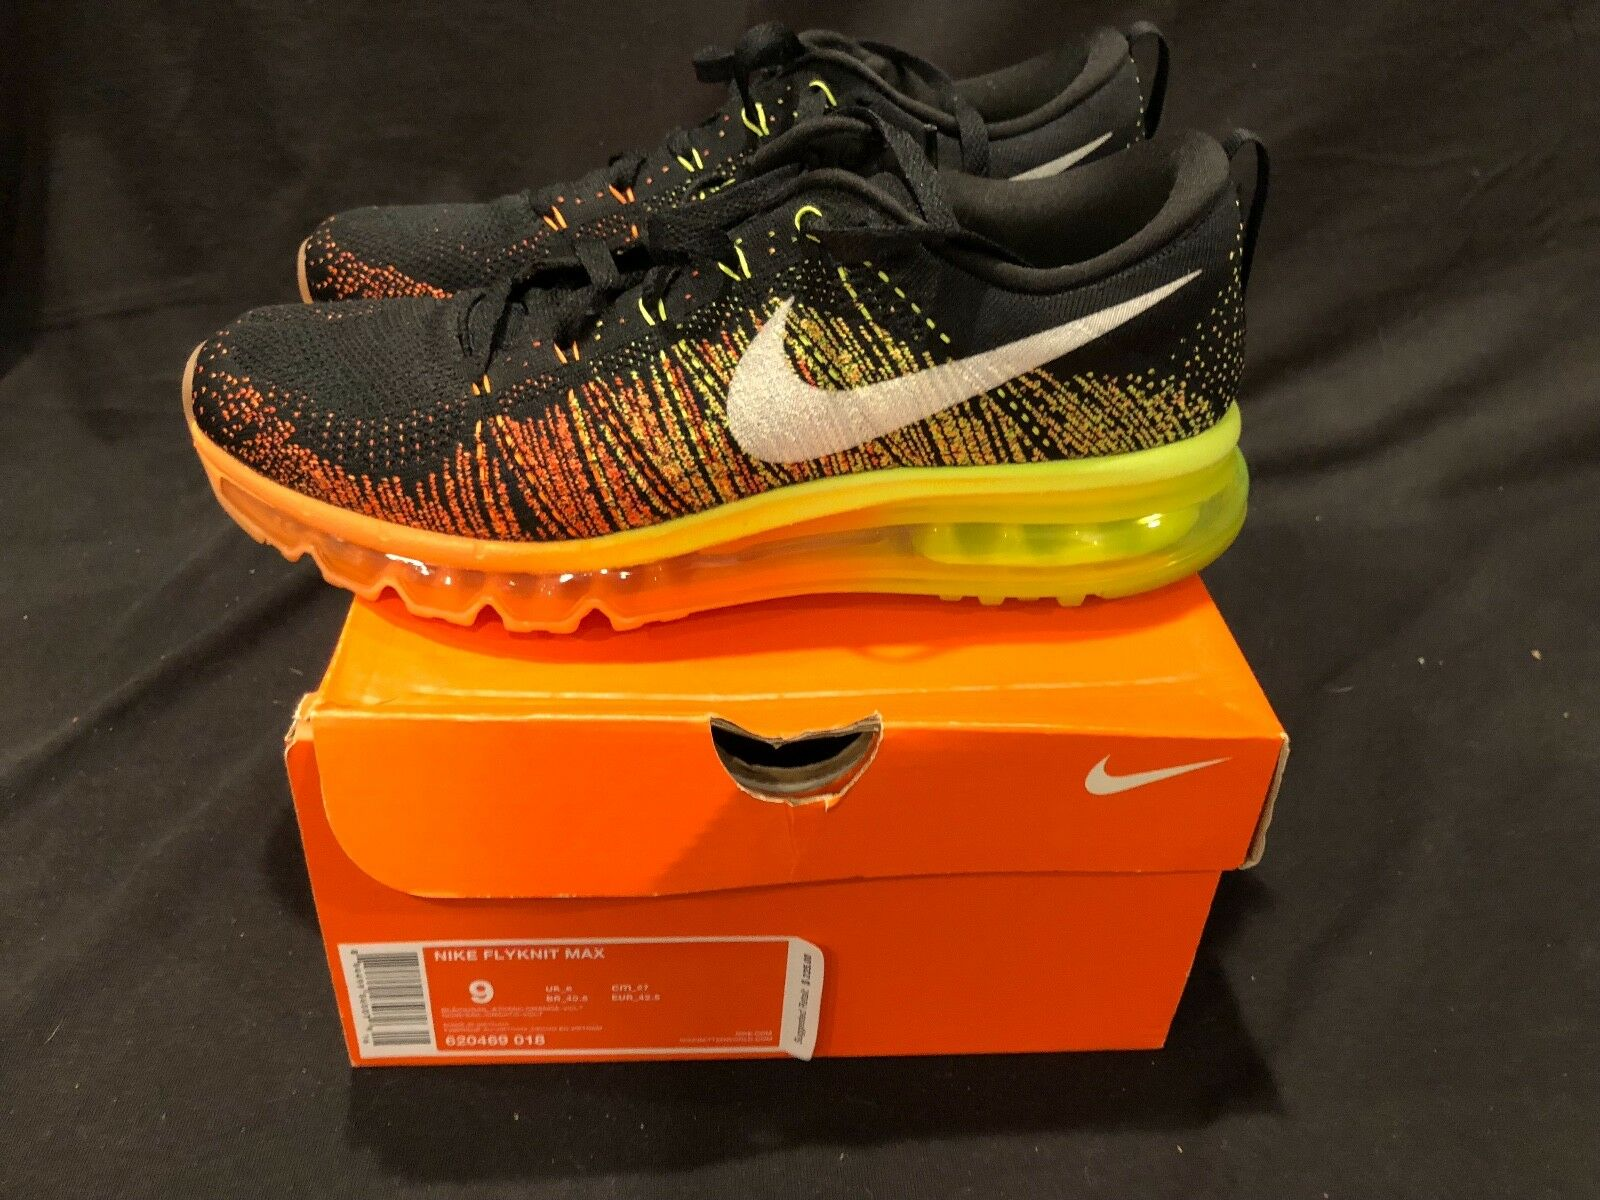 Worn Once NIKE FLYKNIT MAX homme  Orange chaussures  noir Atomic Orange  Volt 620469 018 Sz 9 1eaba0